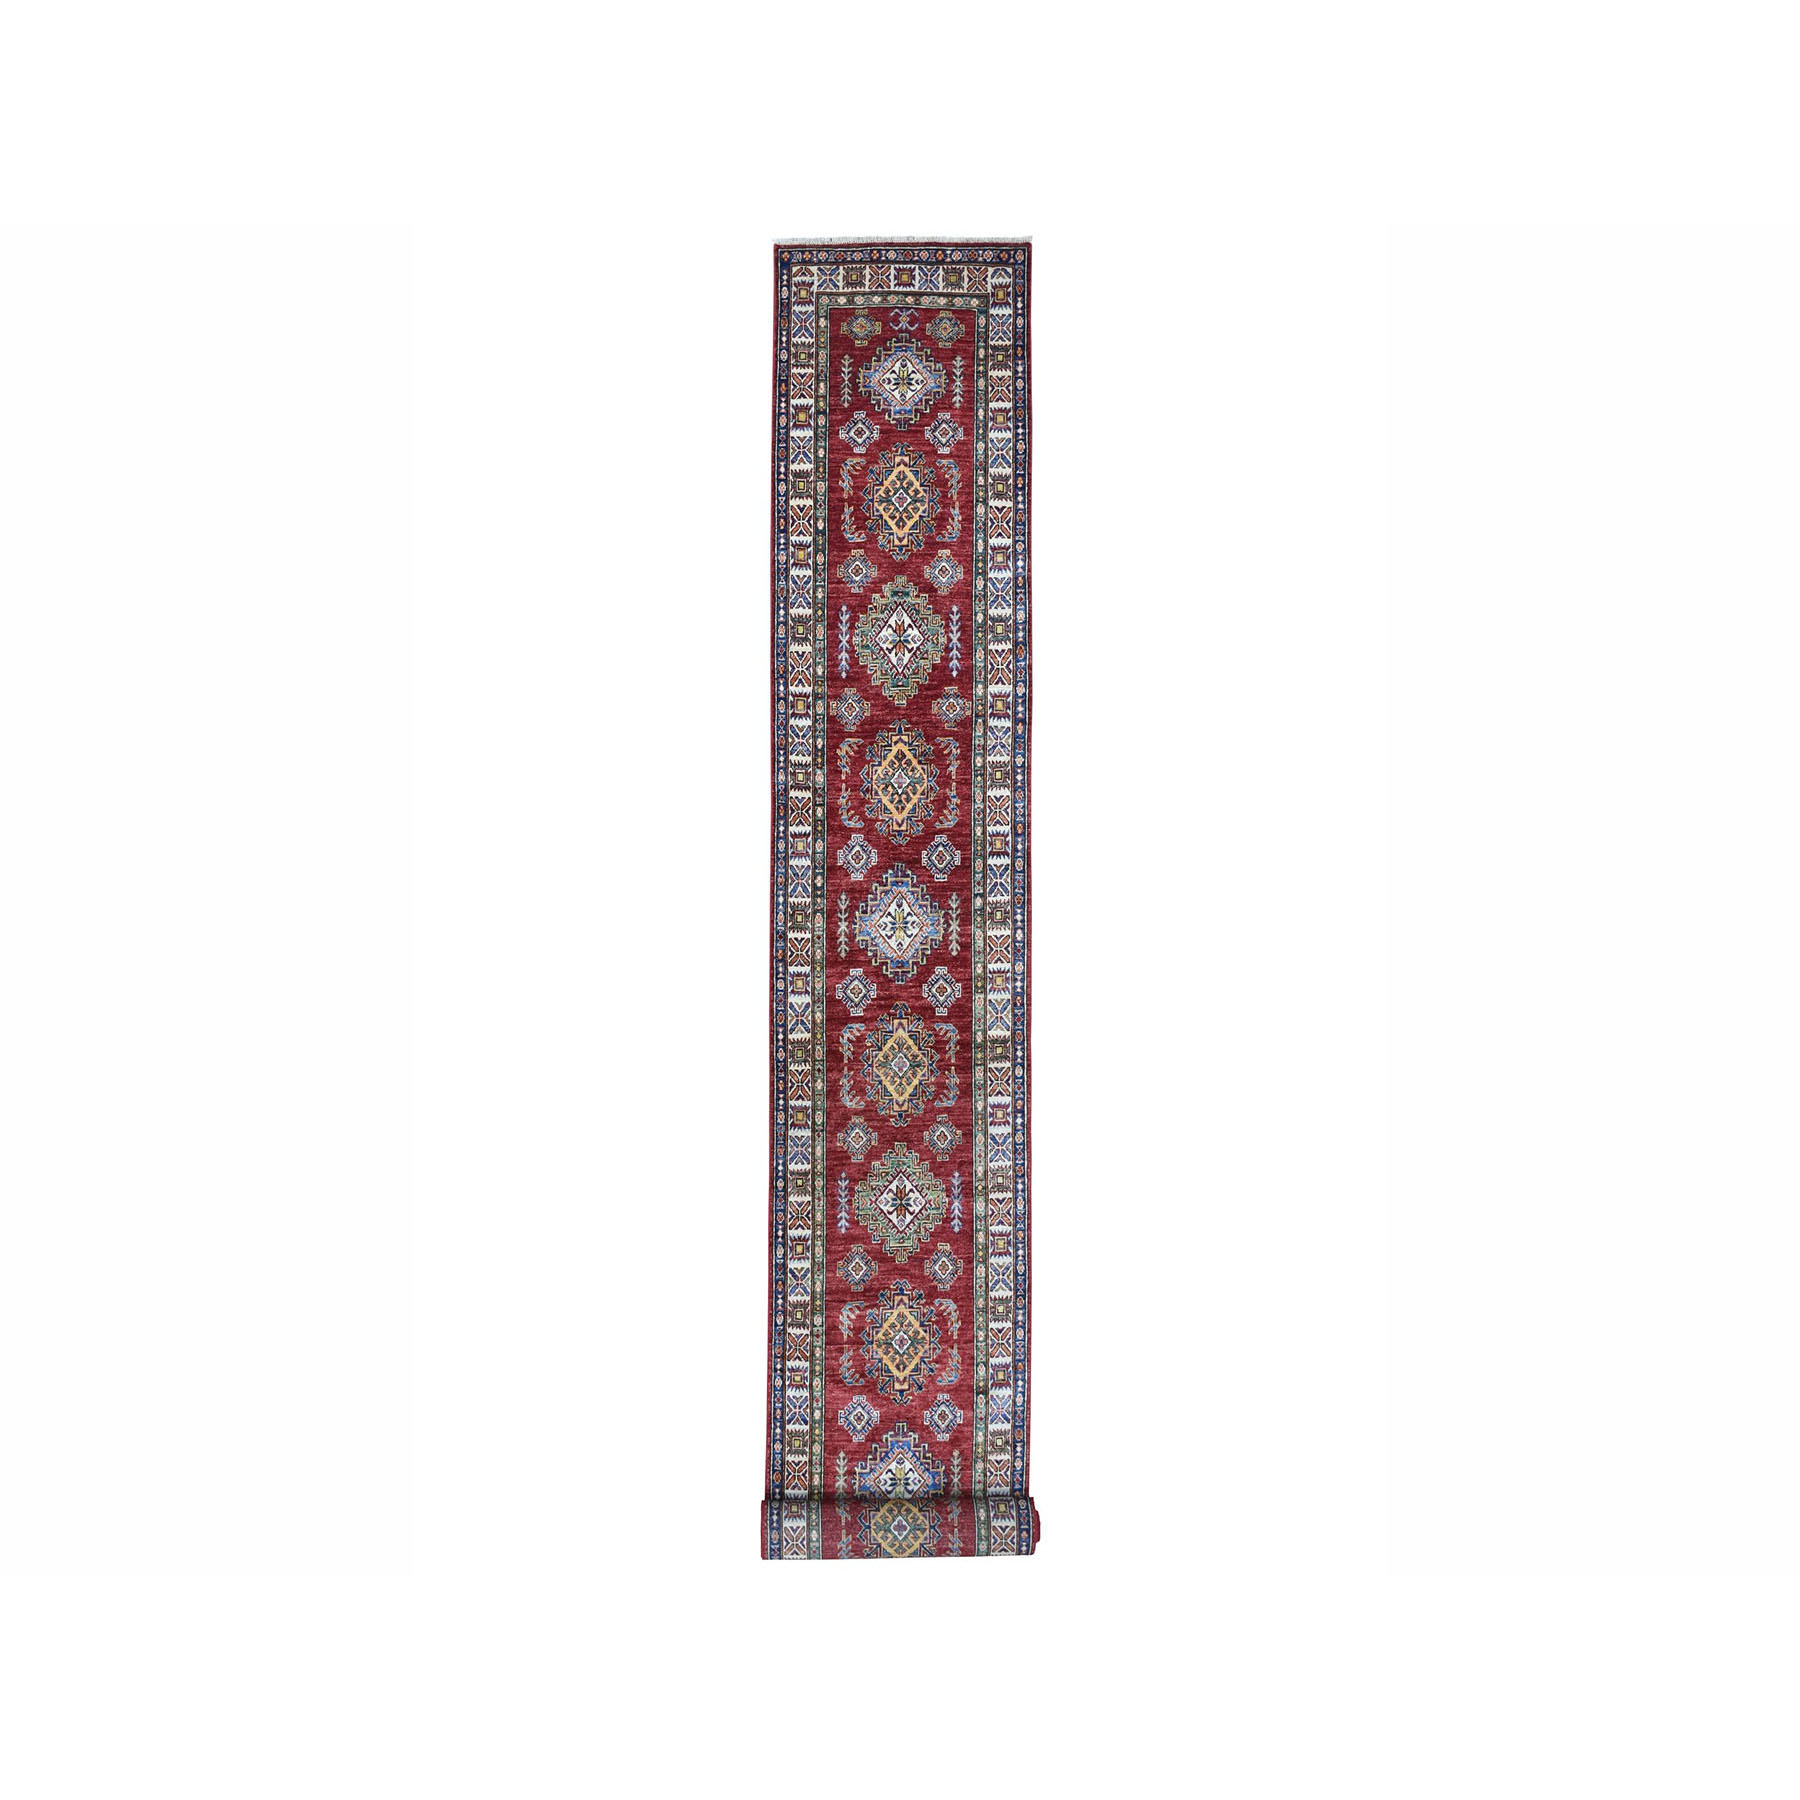 "2'8""x20'6"" Super Kazak Red Geometric Design Pure Wool Hand Woven XL Runner Oriental Rug"